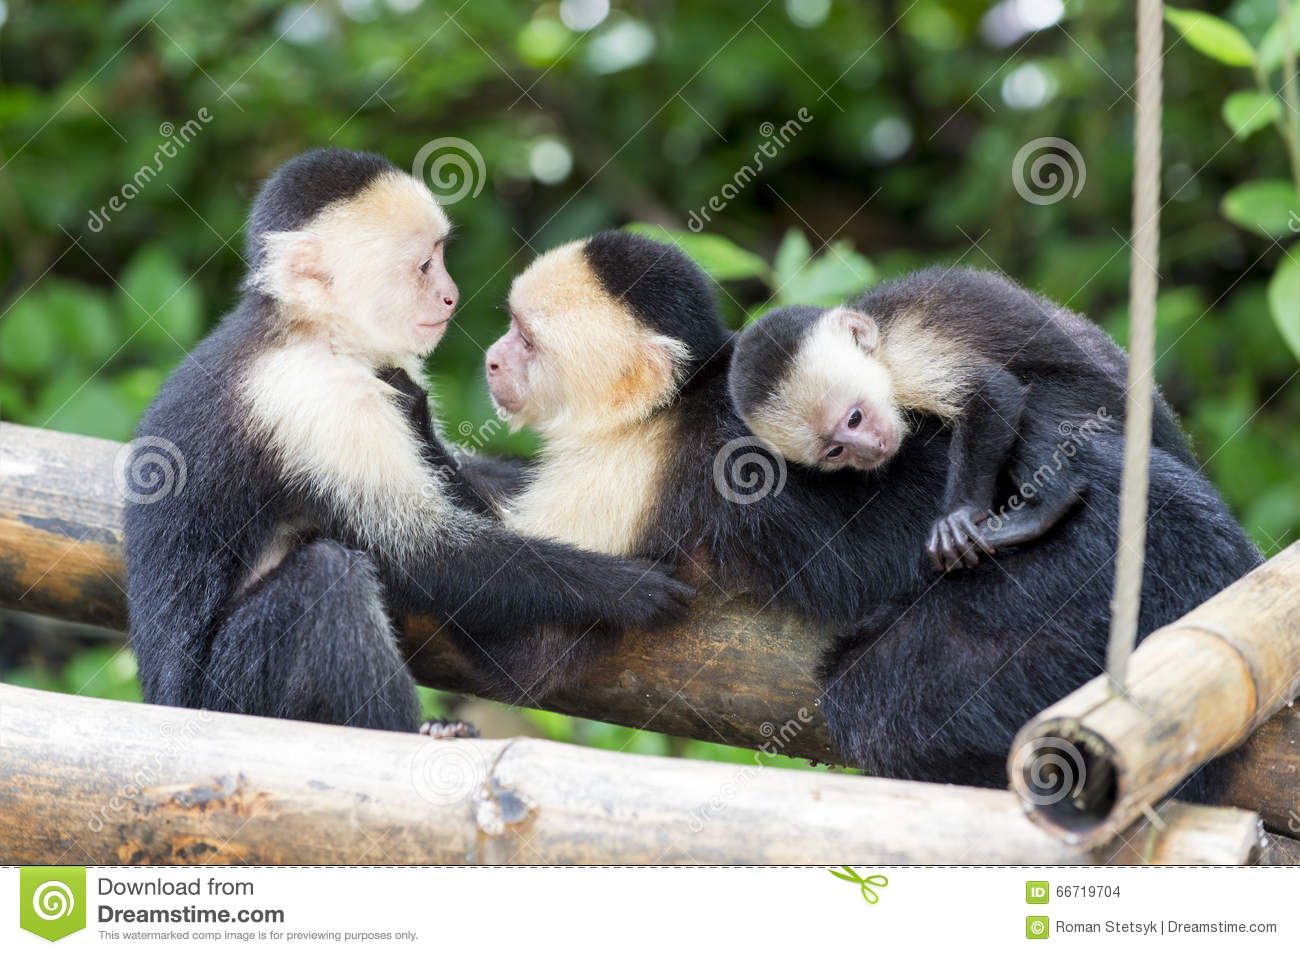 Spider Monkey Family Stock Photo - Image: 66719704